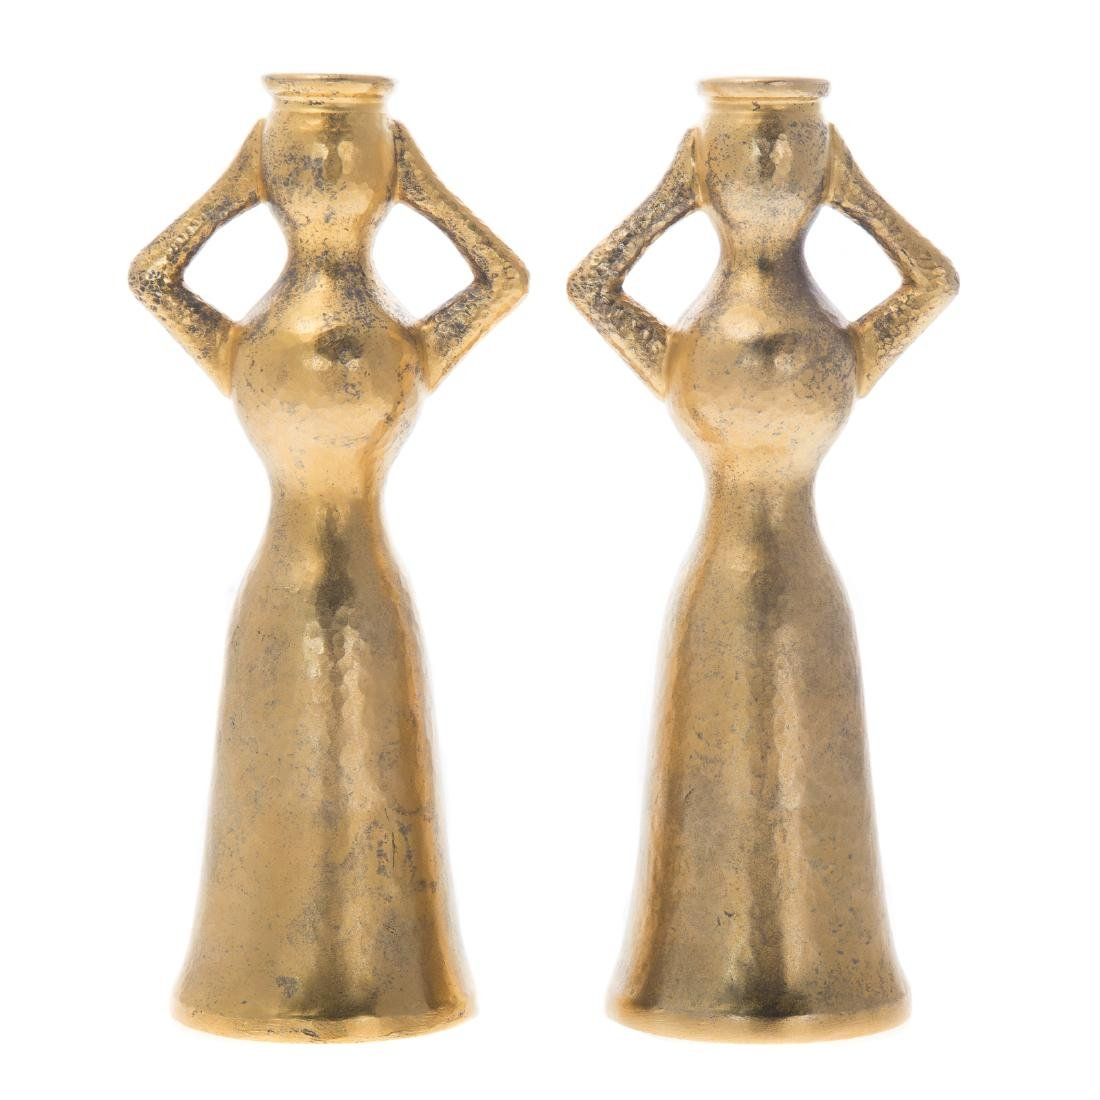 Pair gilt silver figural candlesticks by Lalaounis